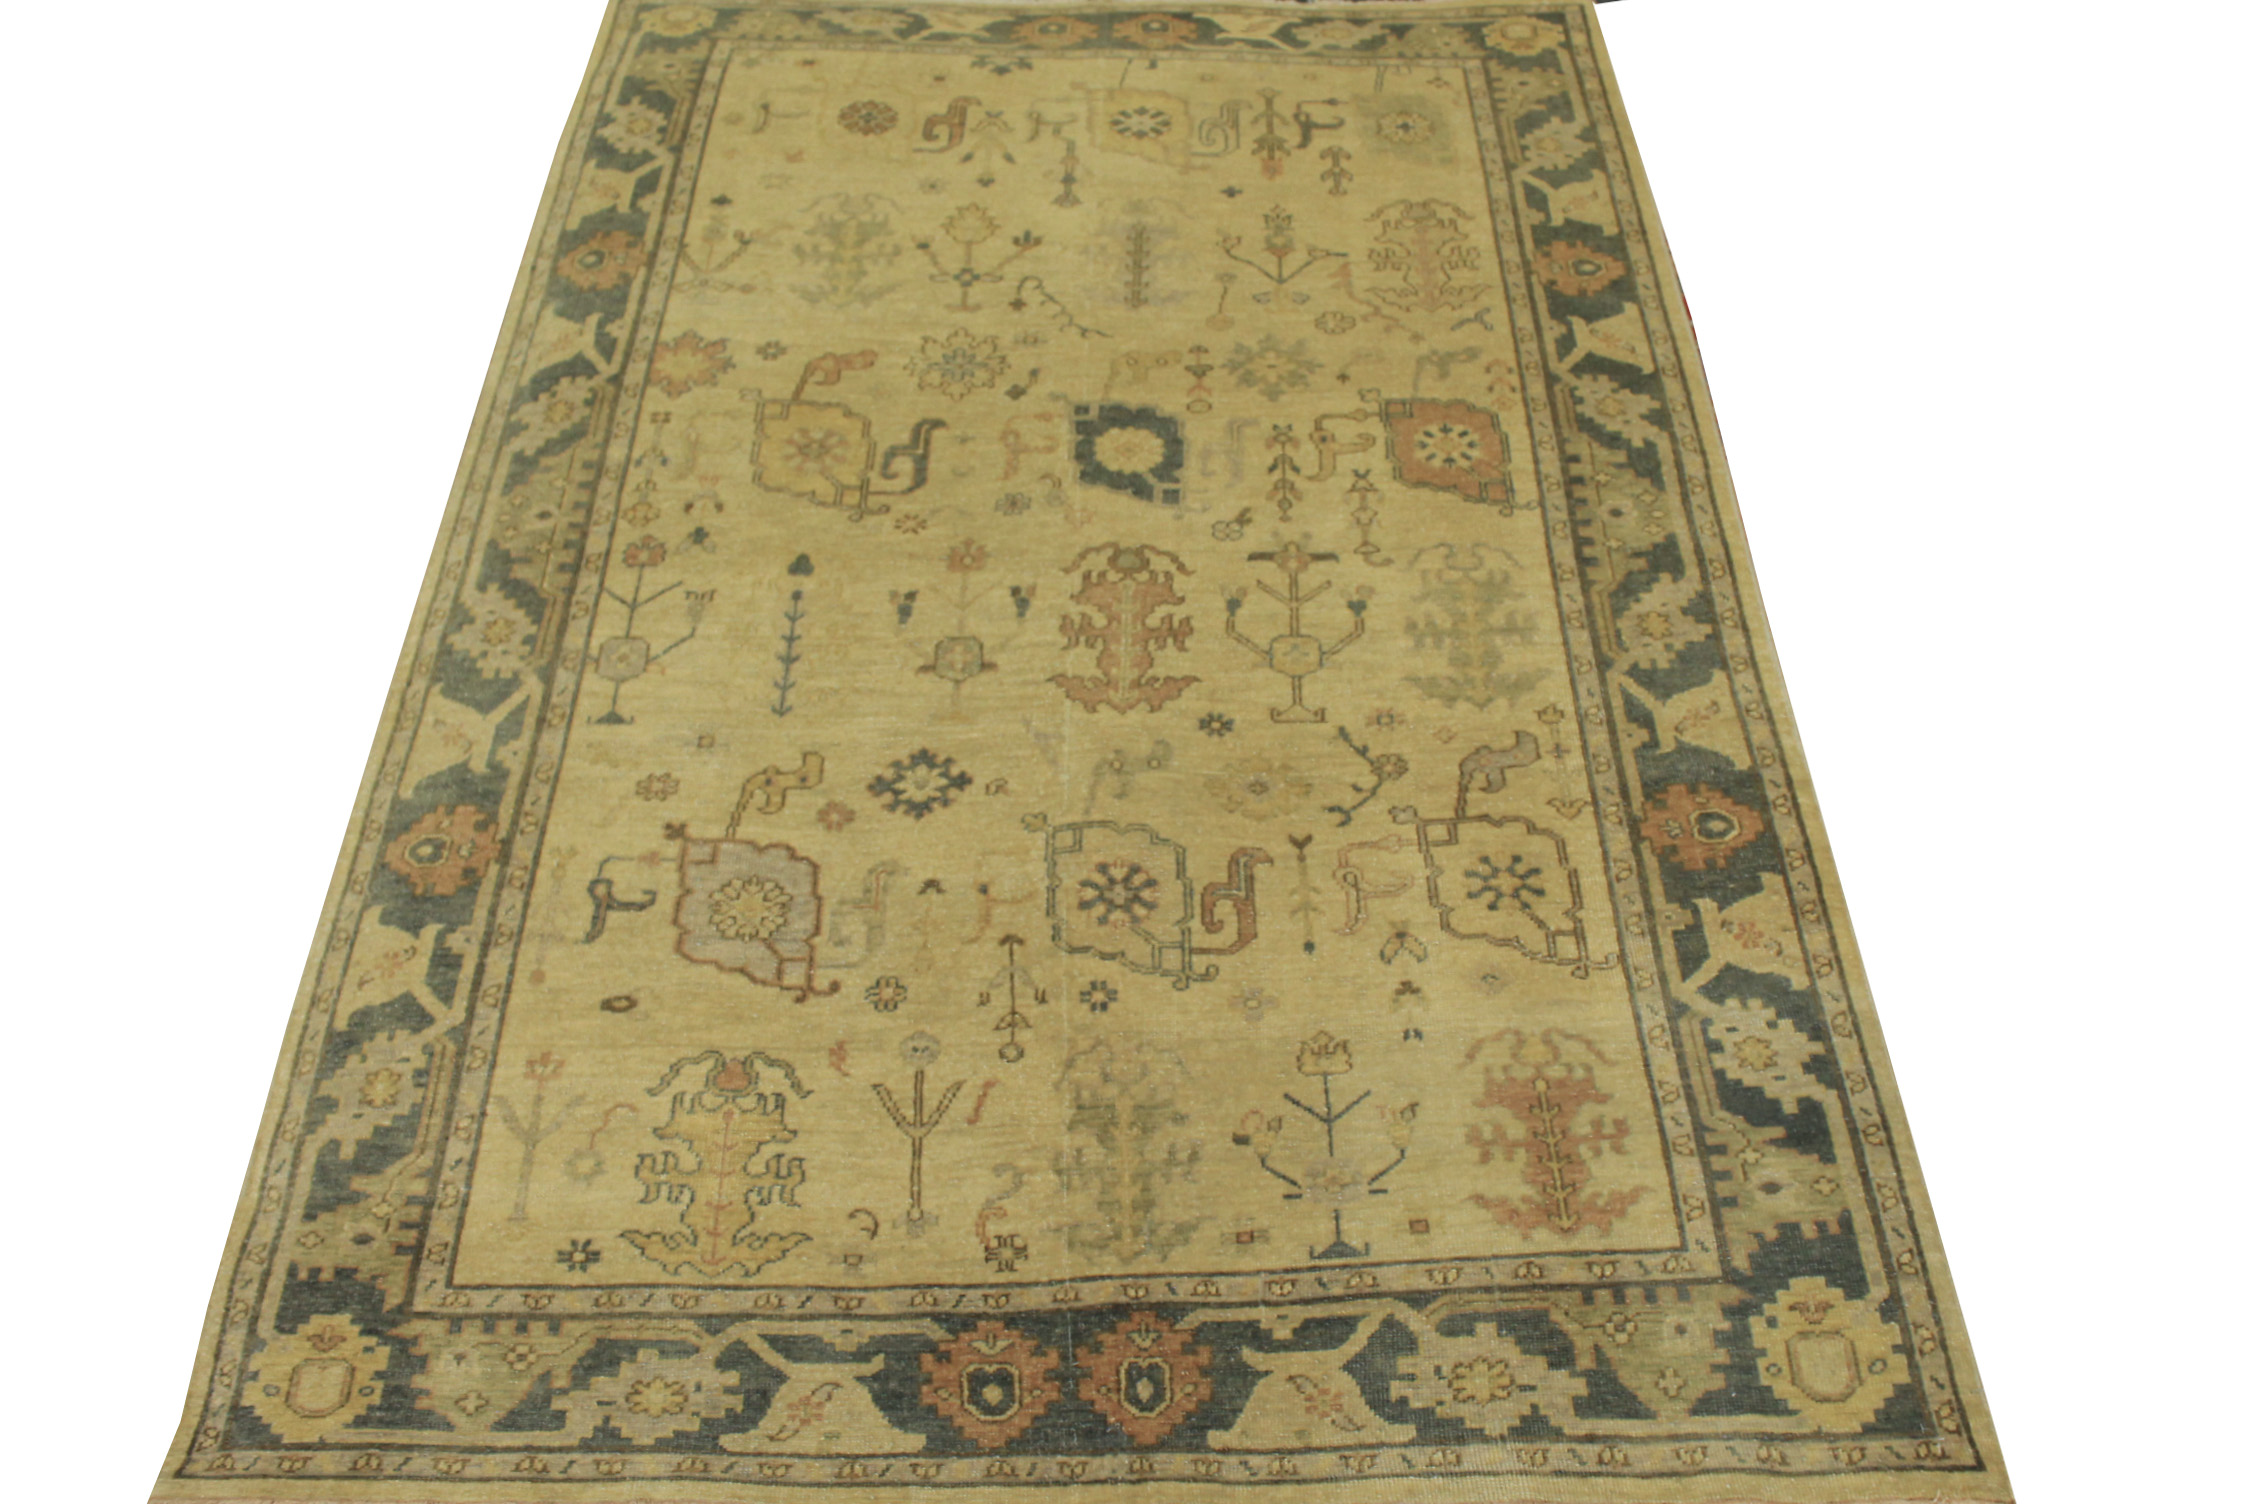 6x9 Oushak Hand Knotted Wool Area Rug - MR15289